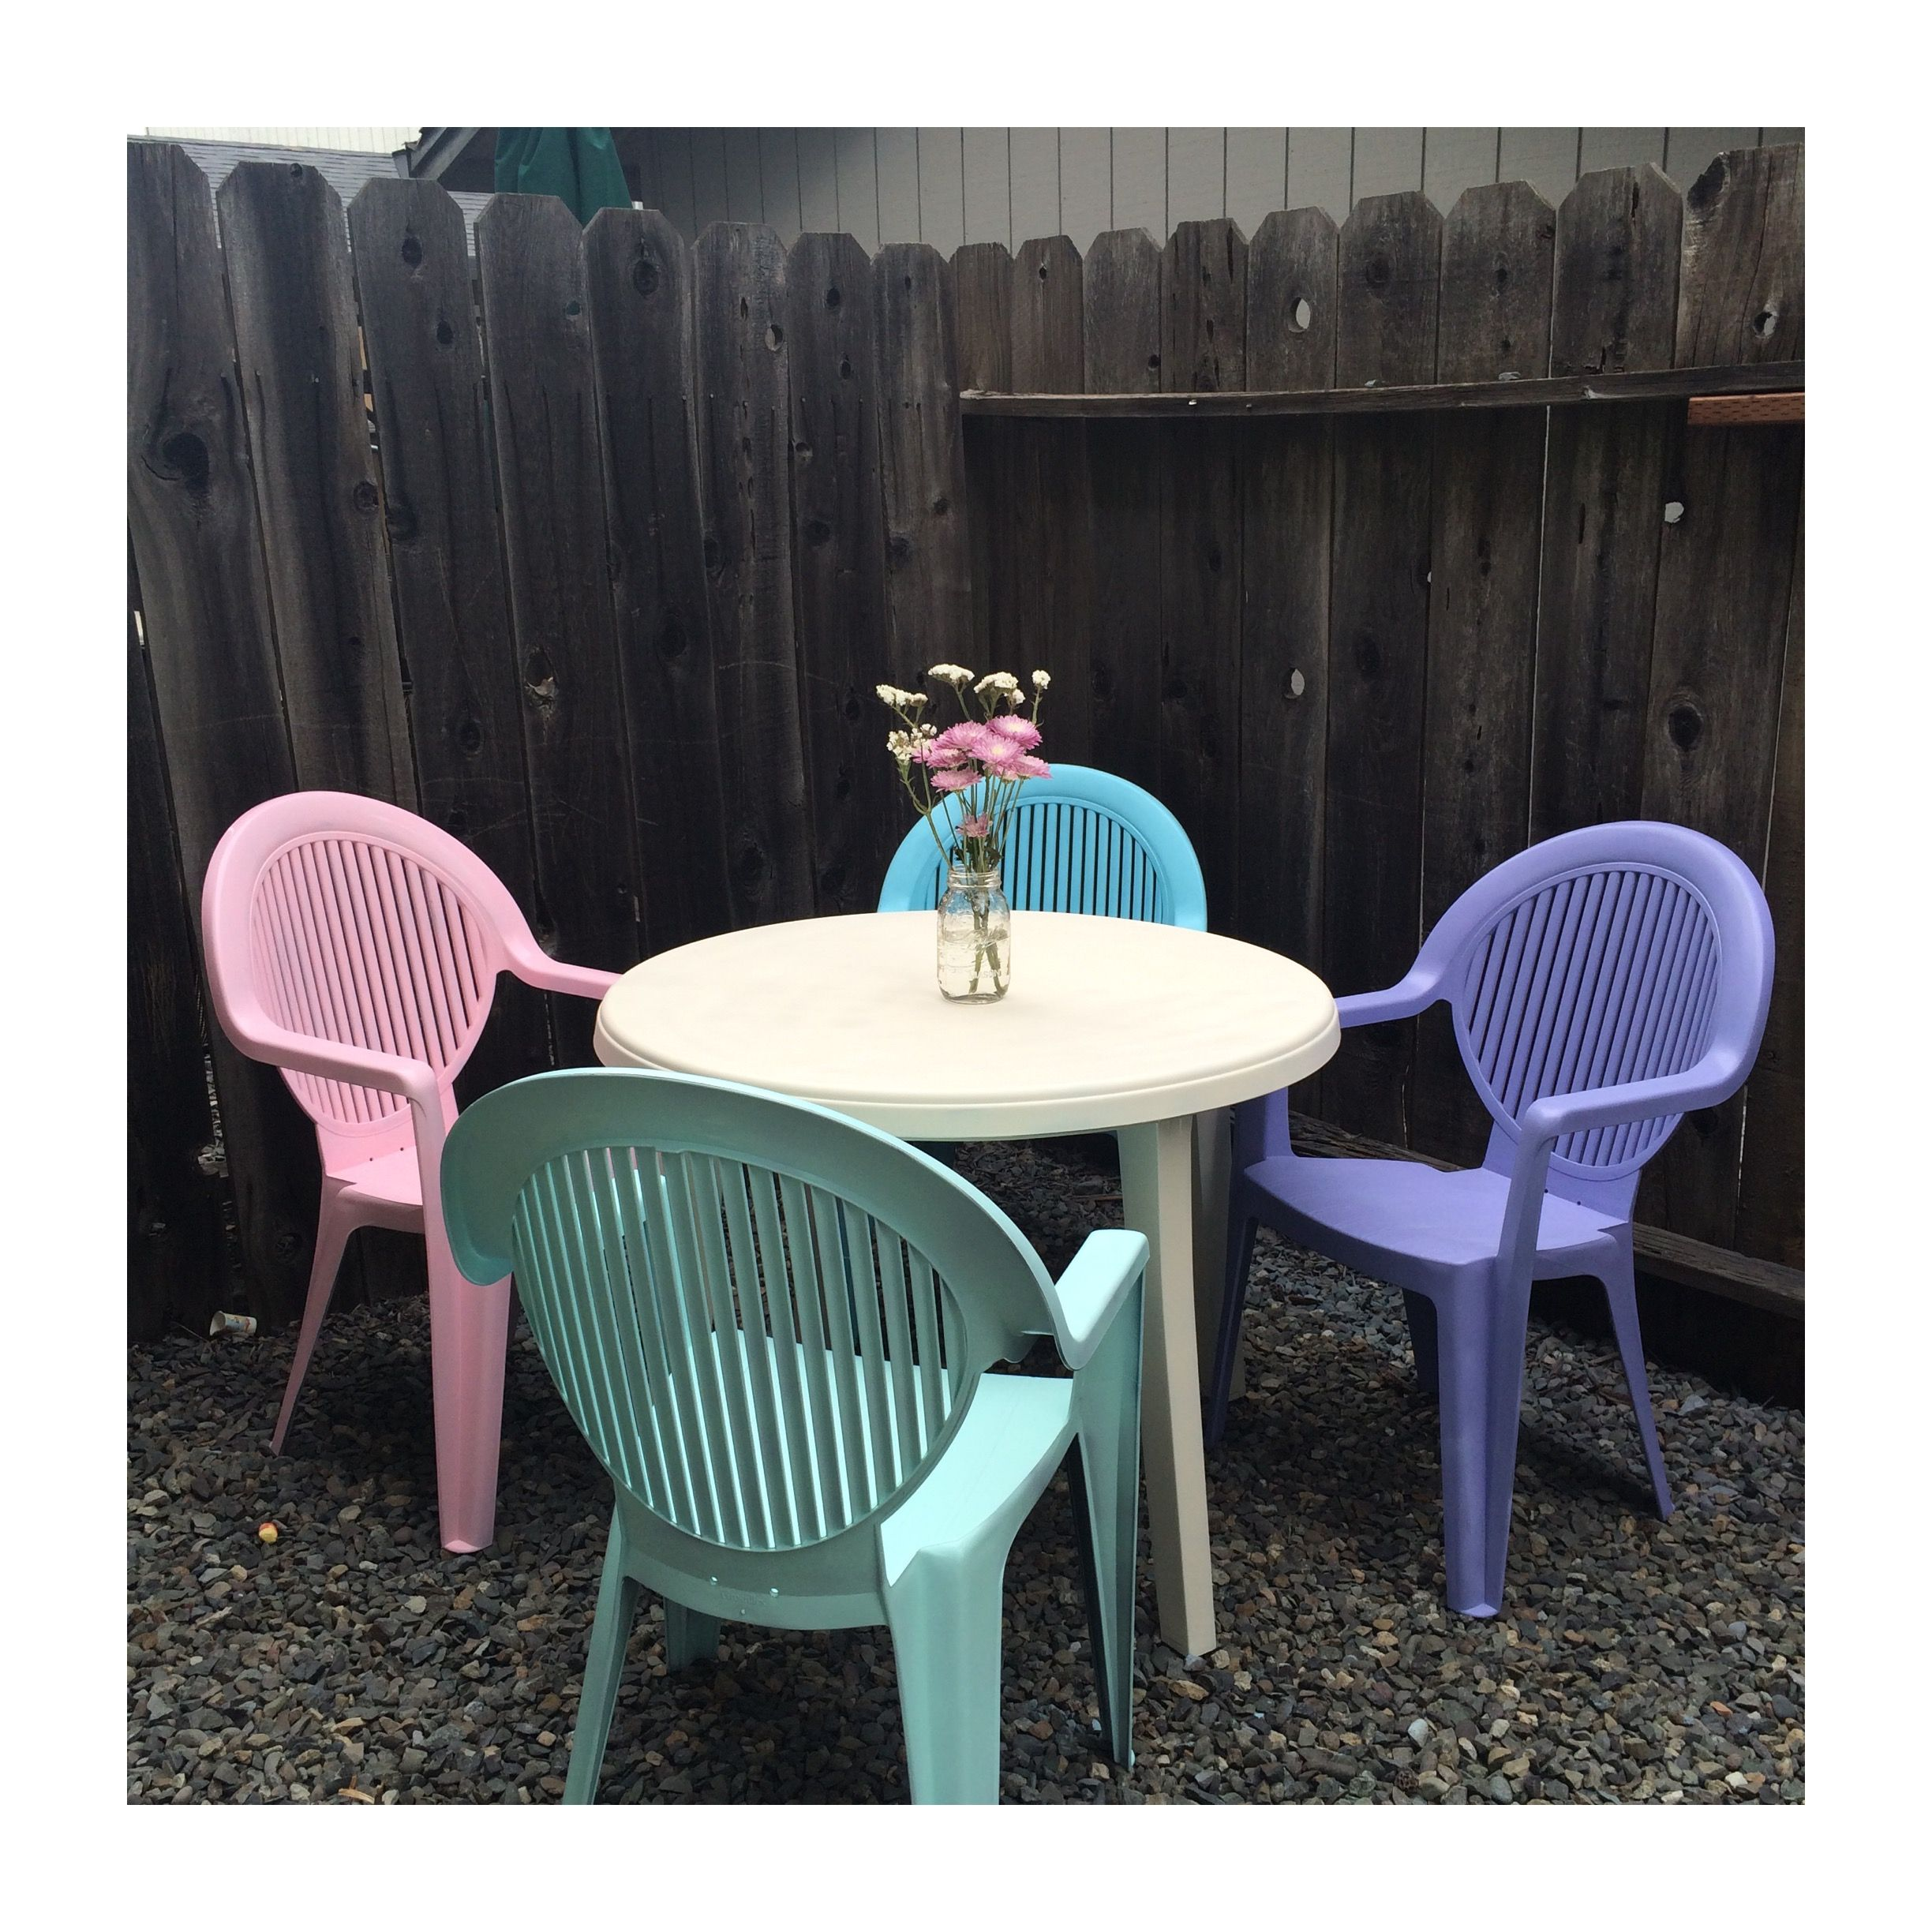 How to spray paint your patio set and breath new life in to it! On the Overly Blessed blog